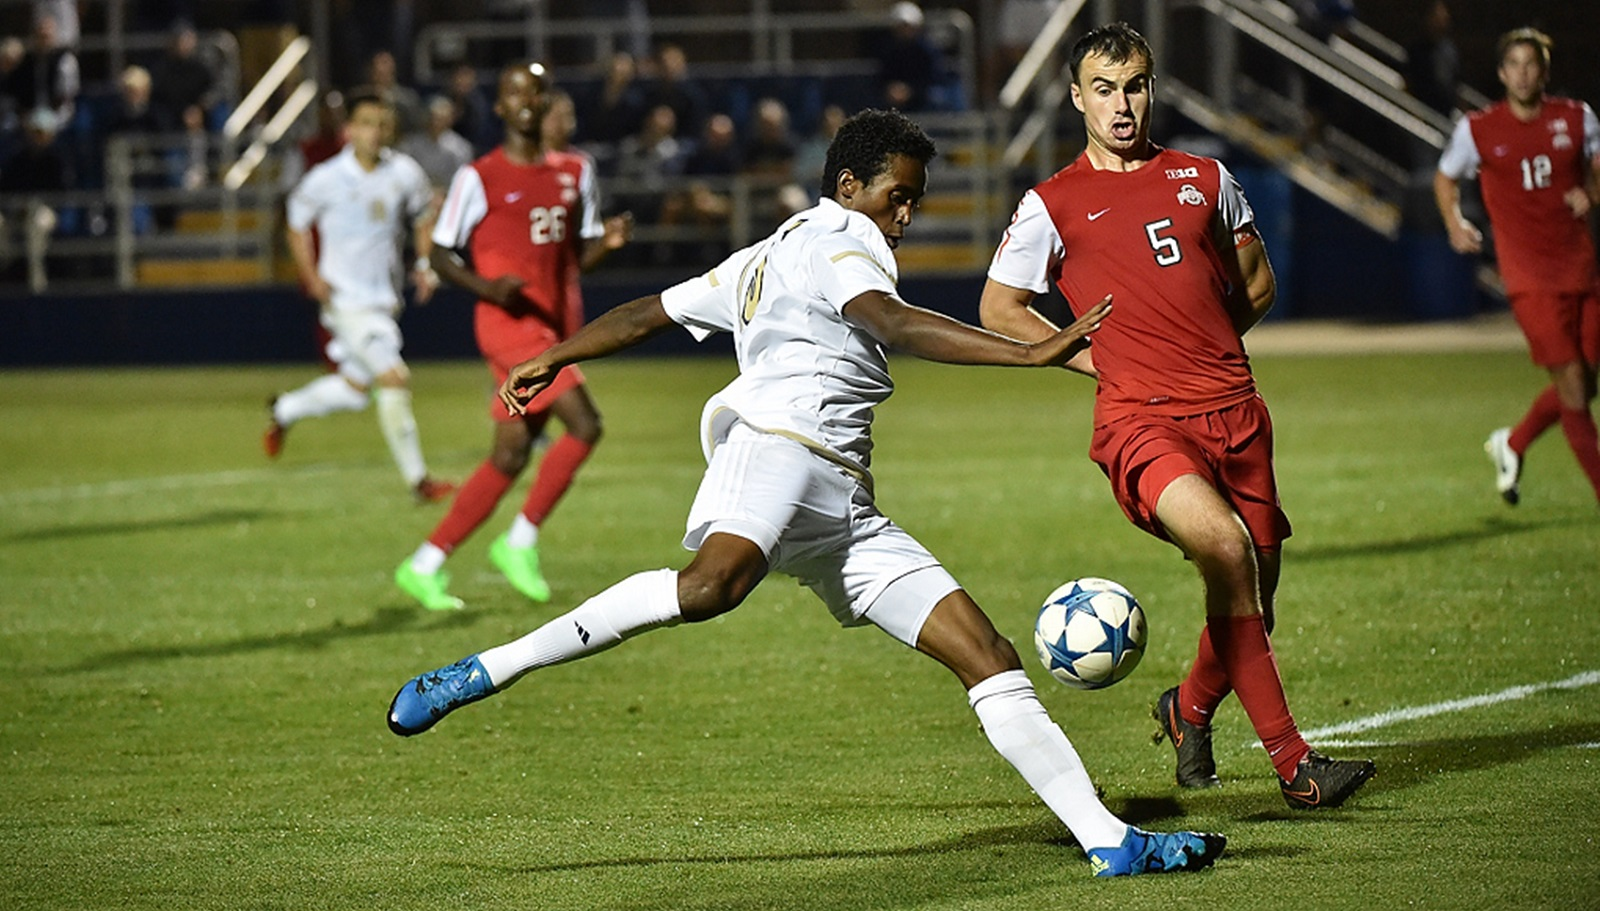 Ezana Kahsay, foreground in white, is a former International Prep soccer player who spent his high school years in Buffalo after moving as a refugee from Eritrea. Now, he plays for Akron, which is still alive in the 2015 NCAA Tournament. (Photo credit: Ernie Aranyosi)